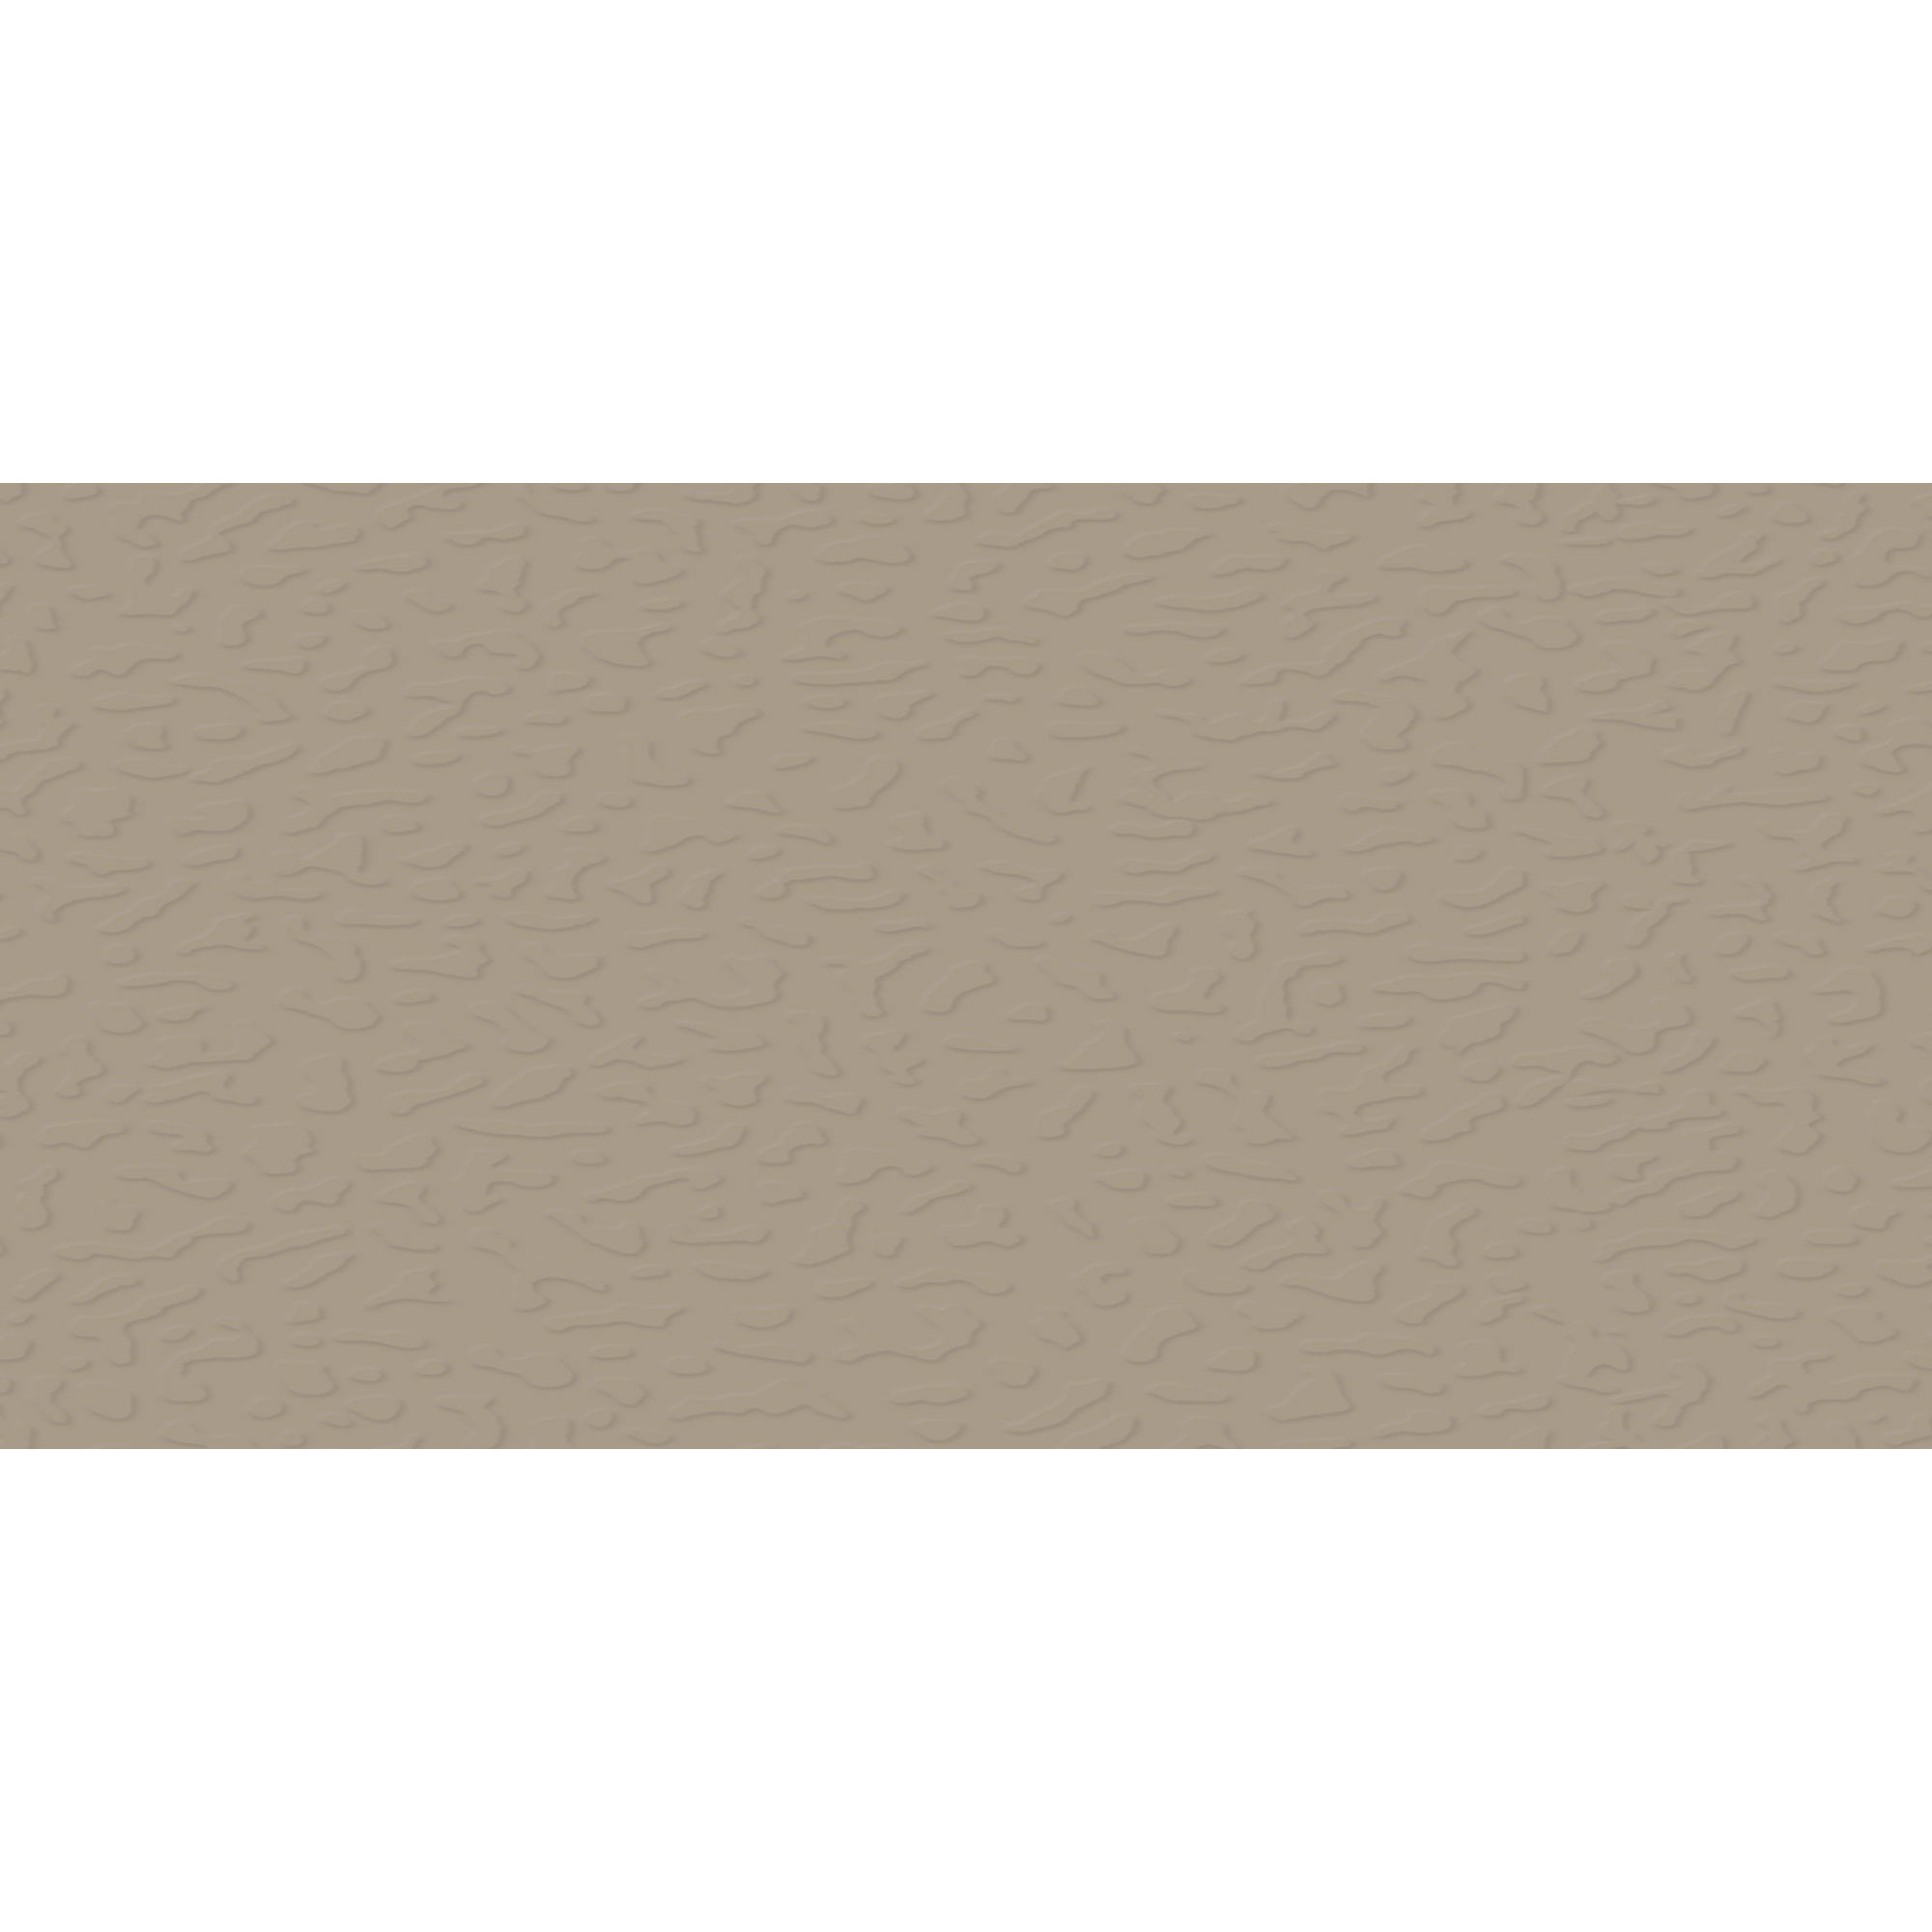 Roppe Designers Choice Textured 6 x 12 Flax